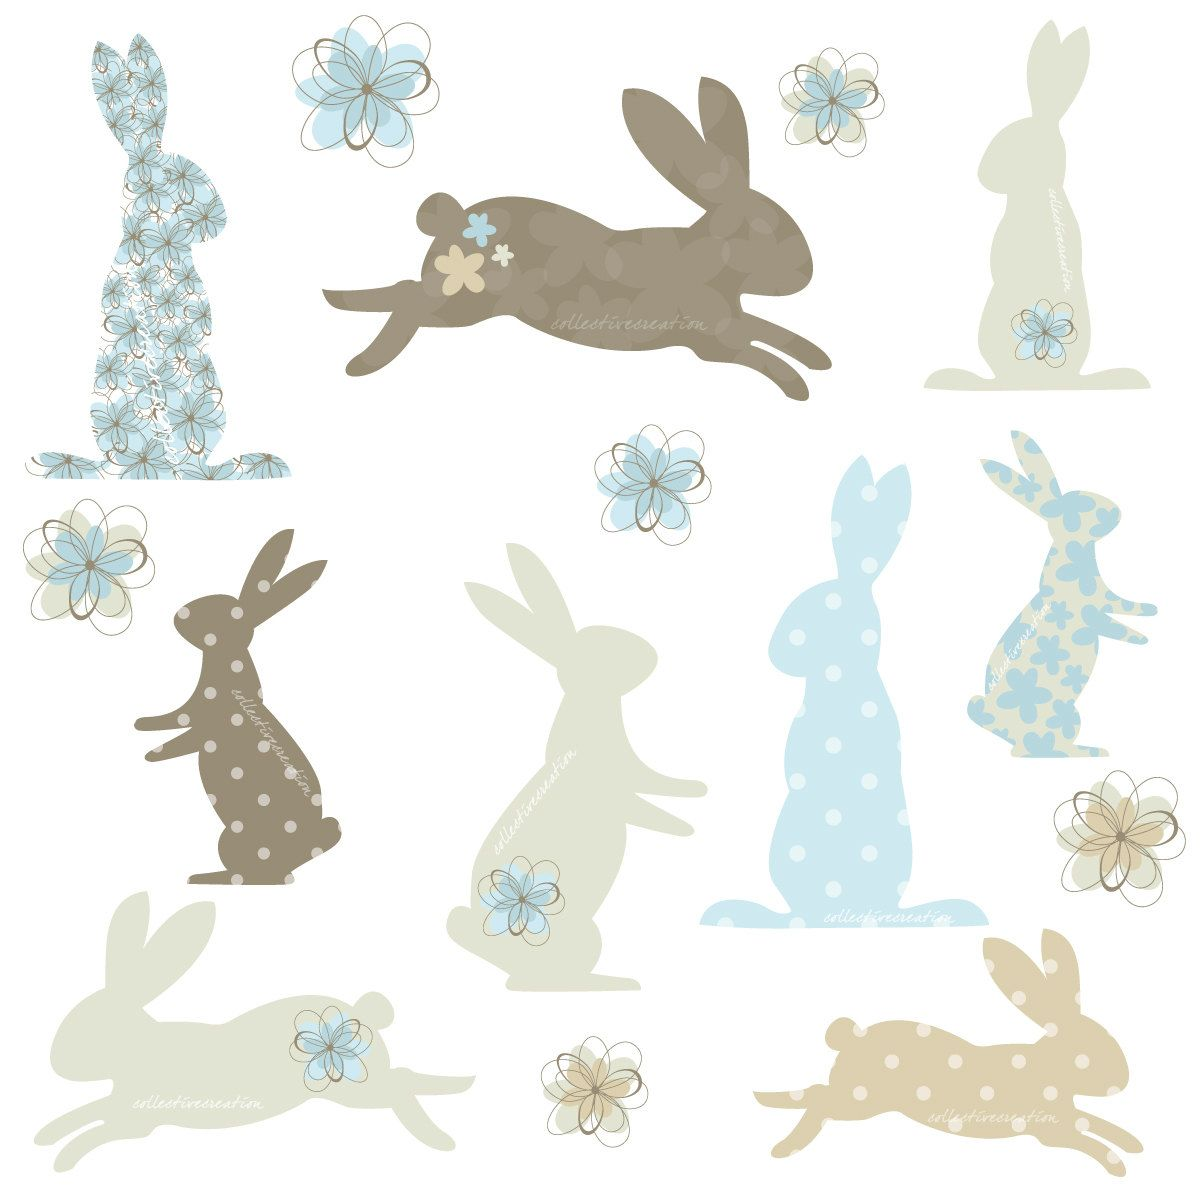 Bunny Patterns Printables Awesome Inspiration Design